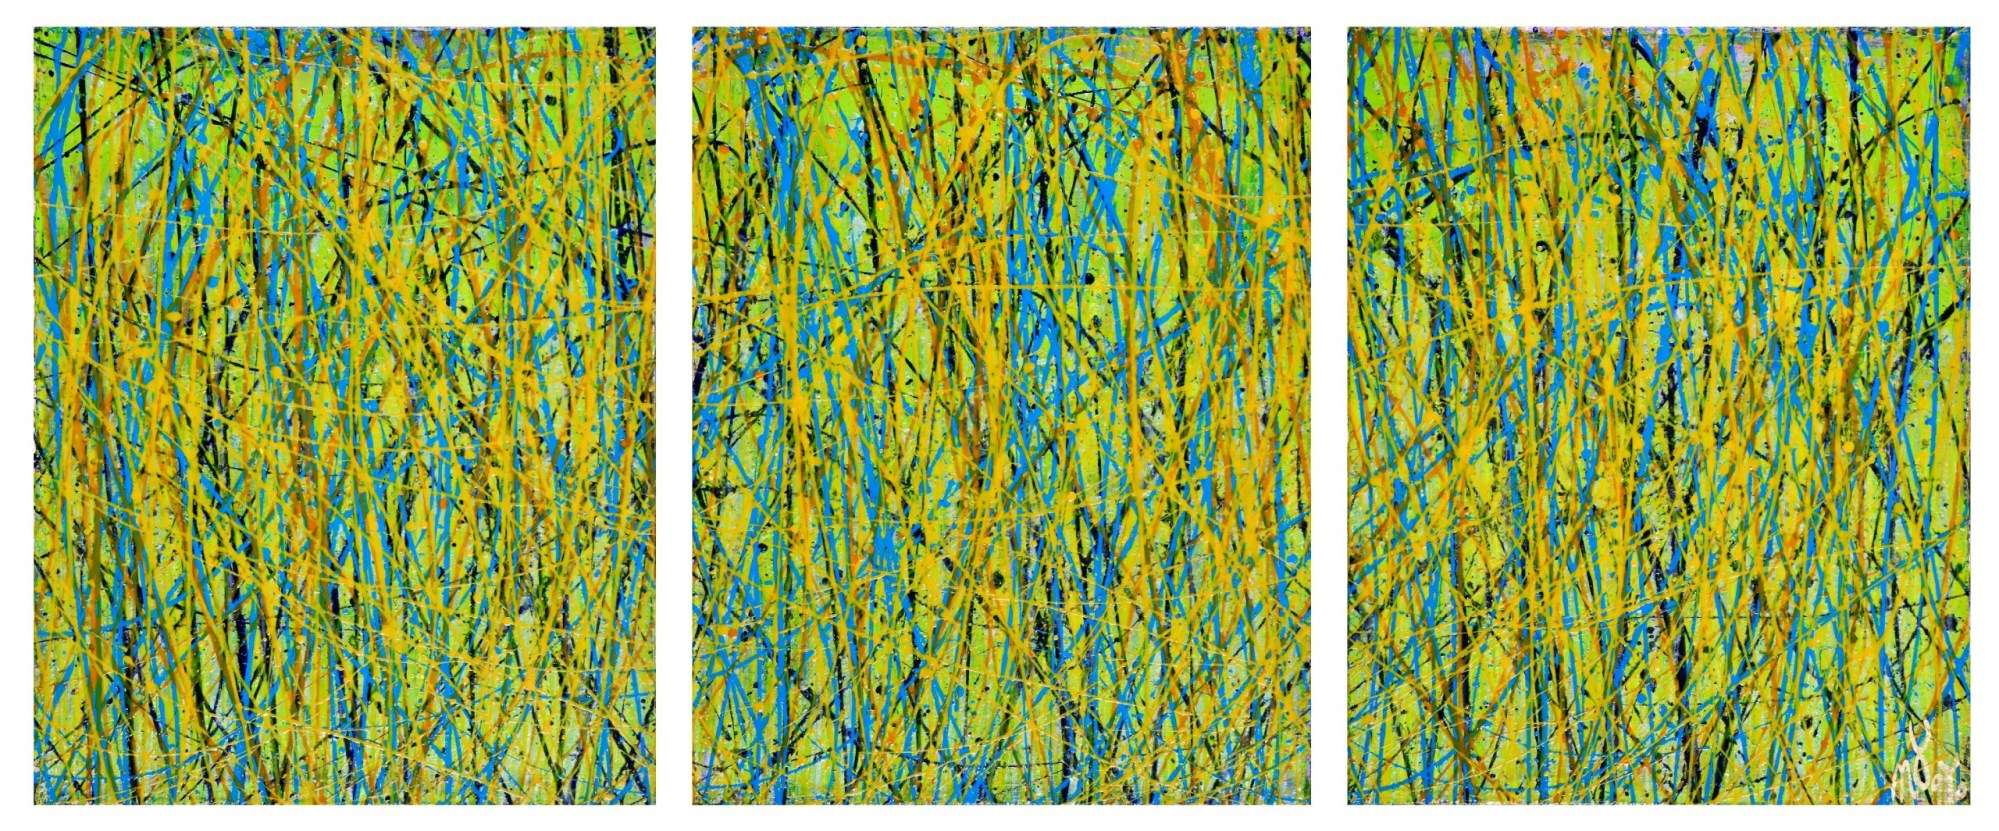 Close and Afar - Triptych (2020) by Nestor Toro